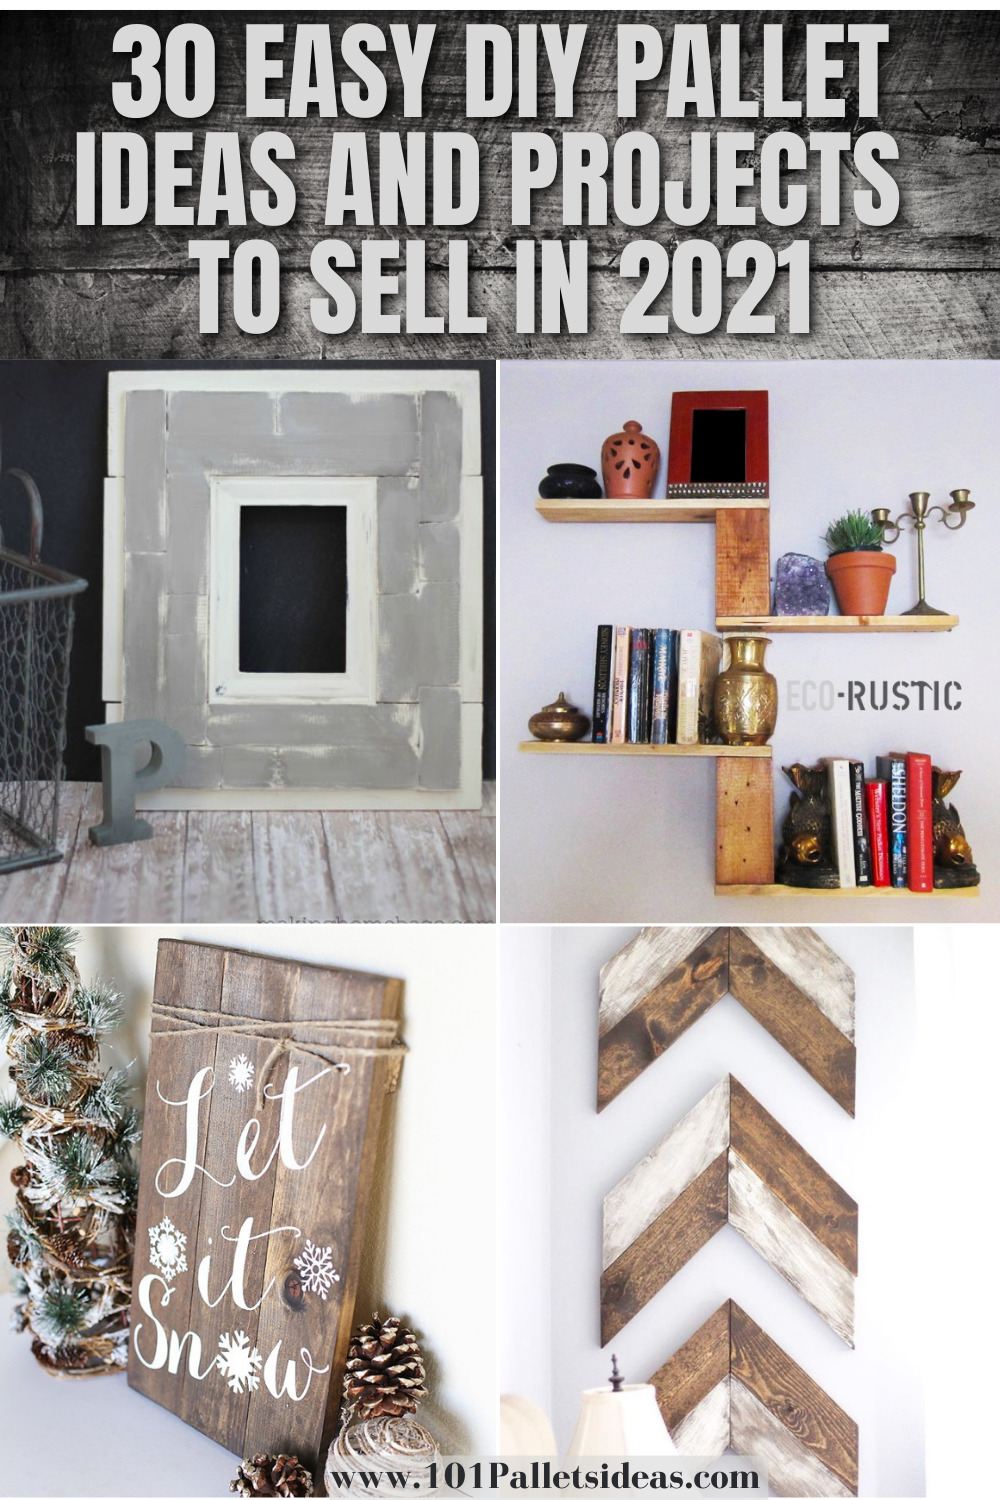 Pallet Projects to Sell